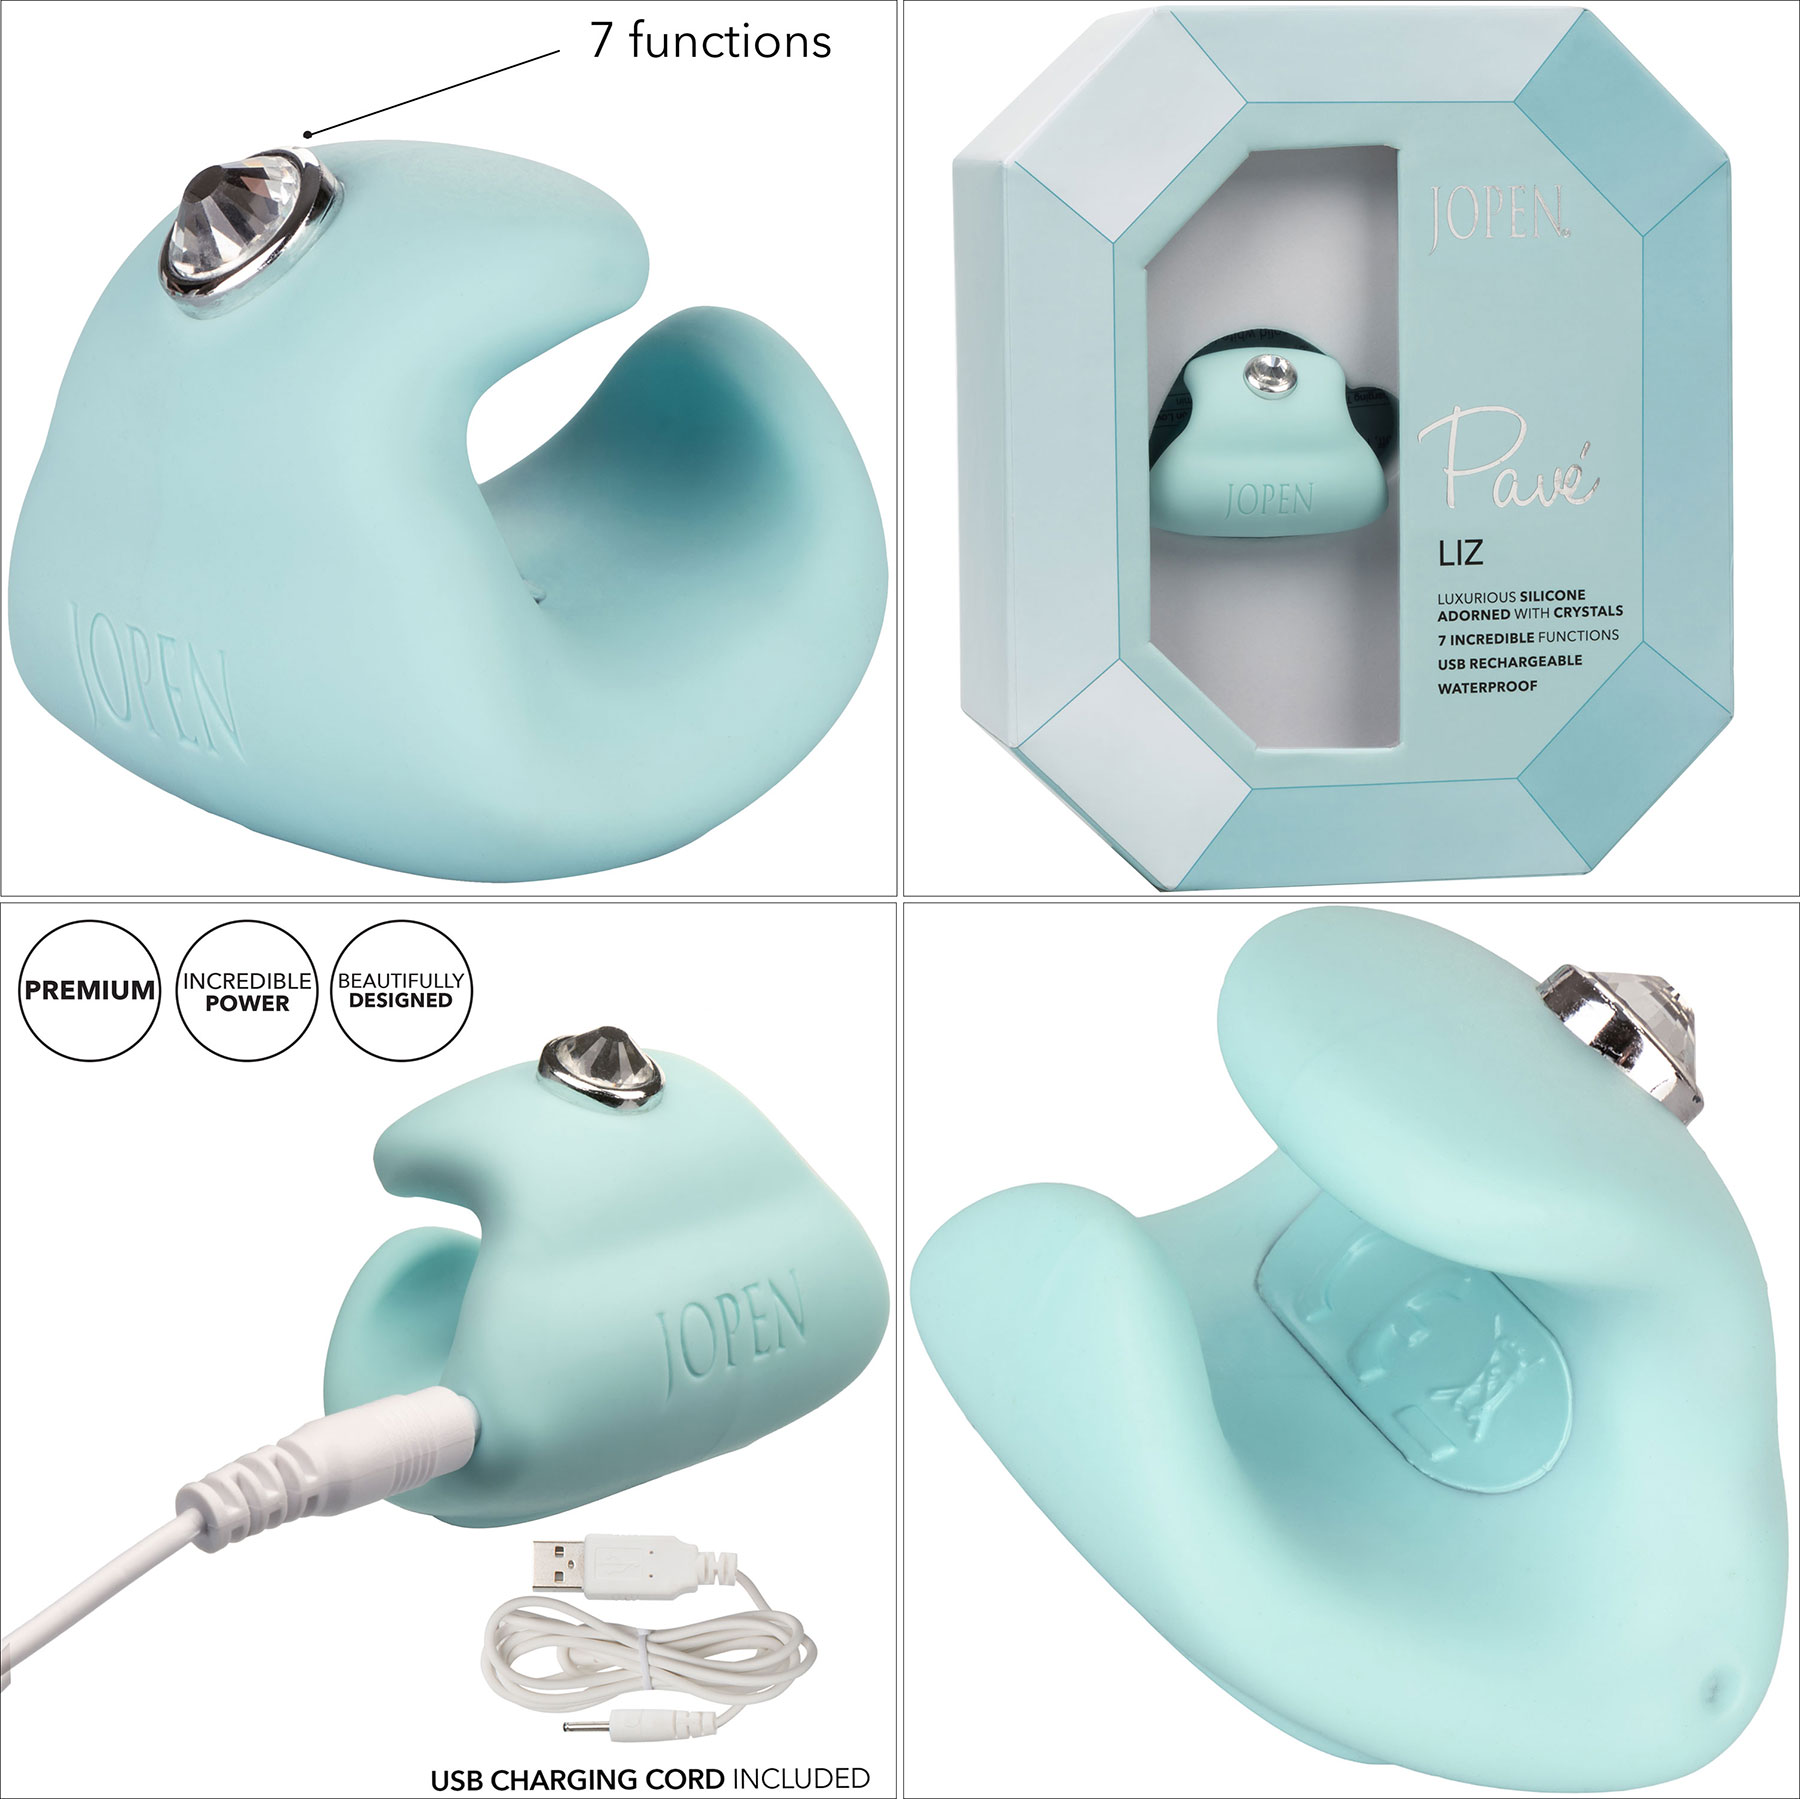 Pave Liz Rechargeable Waterproof Silicone Finger Vibrator - Features